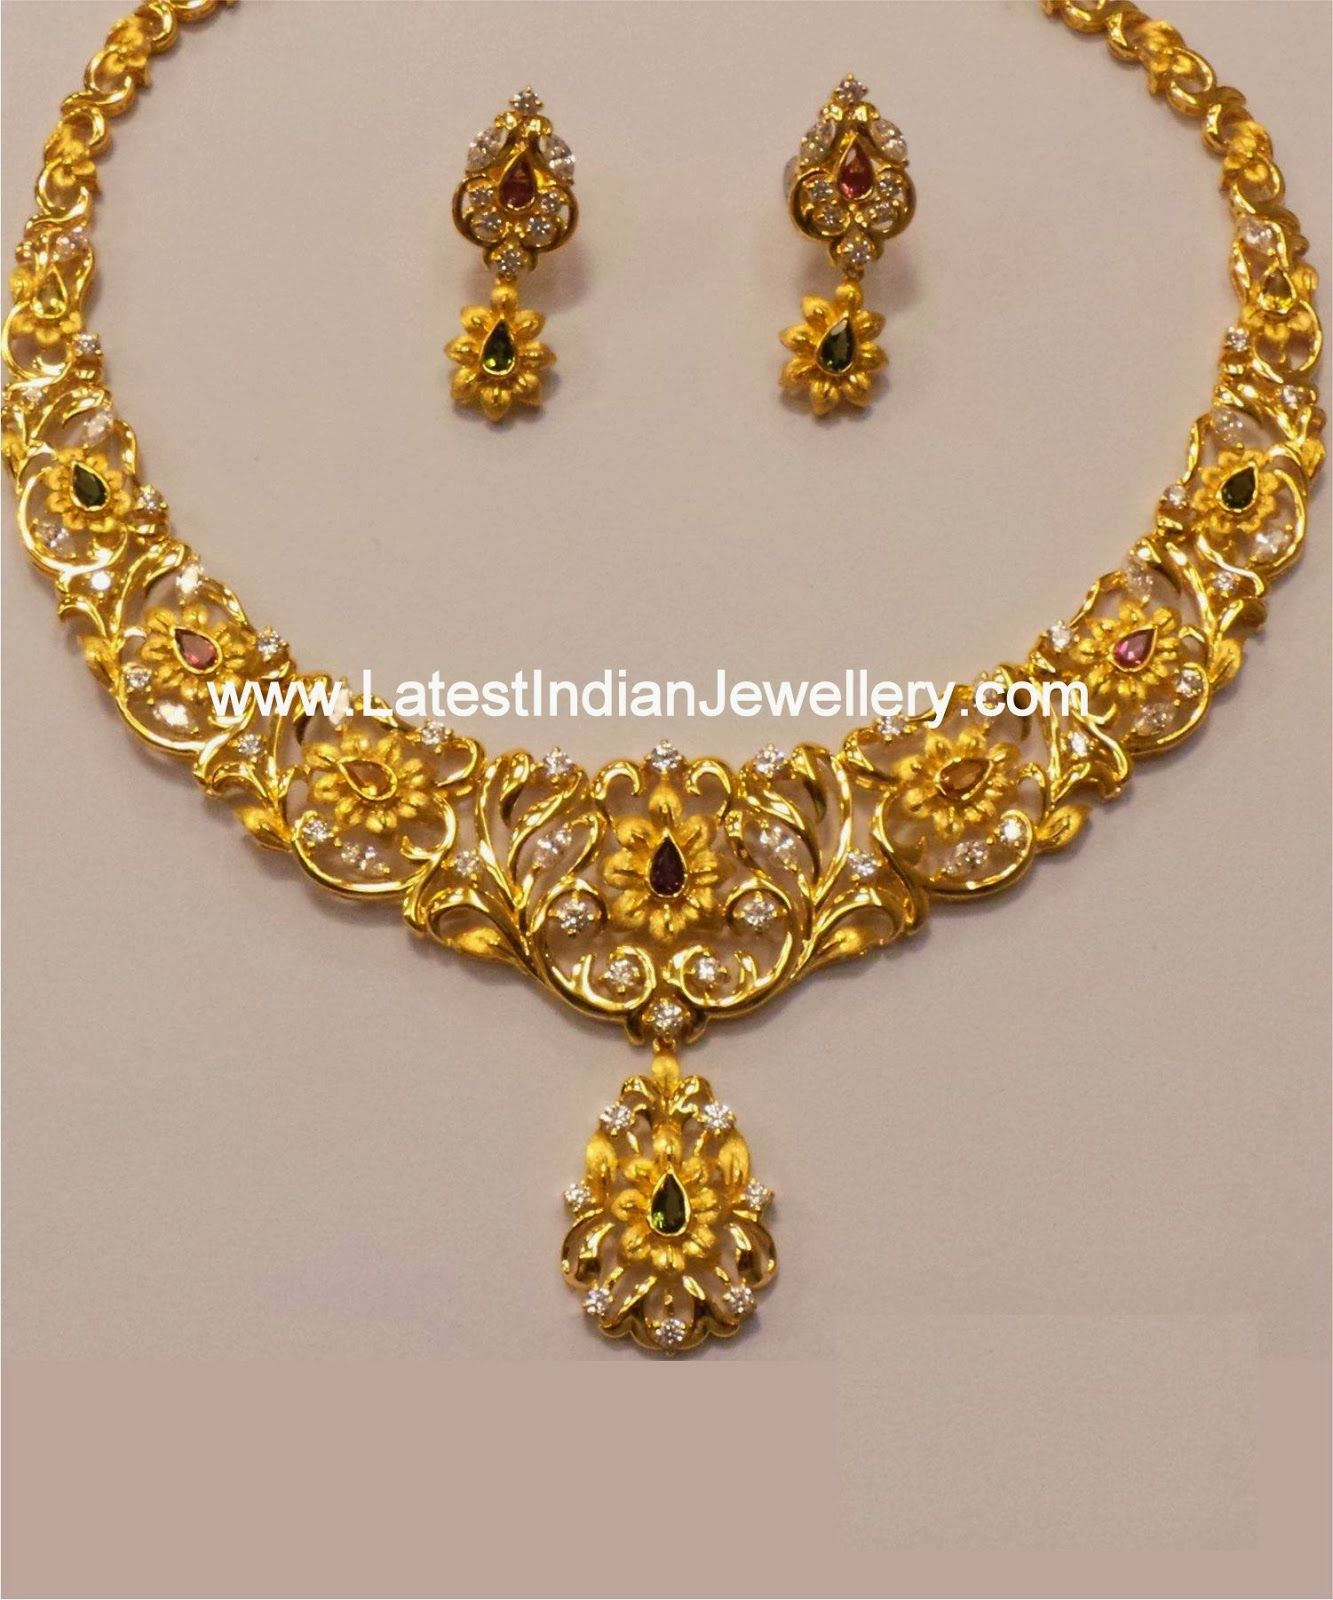 Indian Gold Jewellery Necklace Designs With Price: Dual Tone Gold Necklace Set